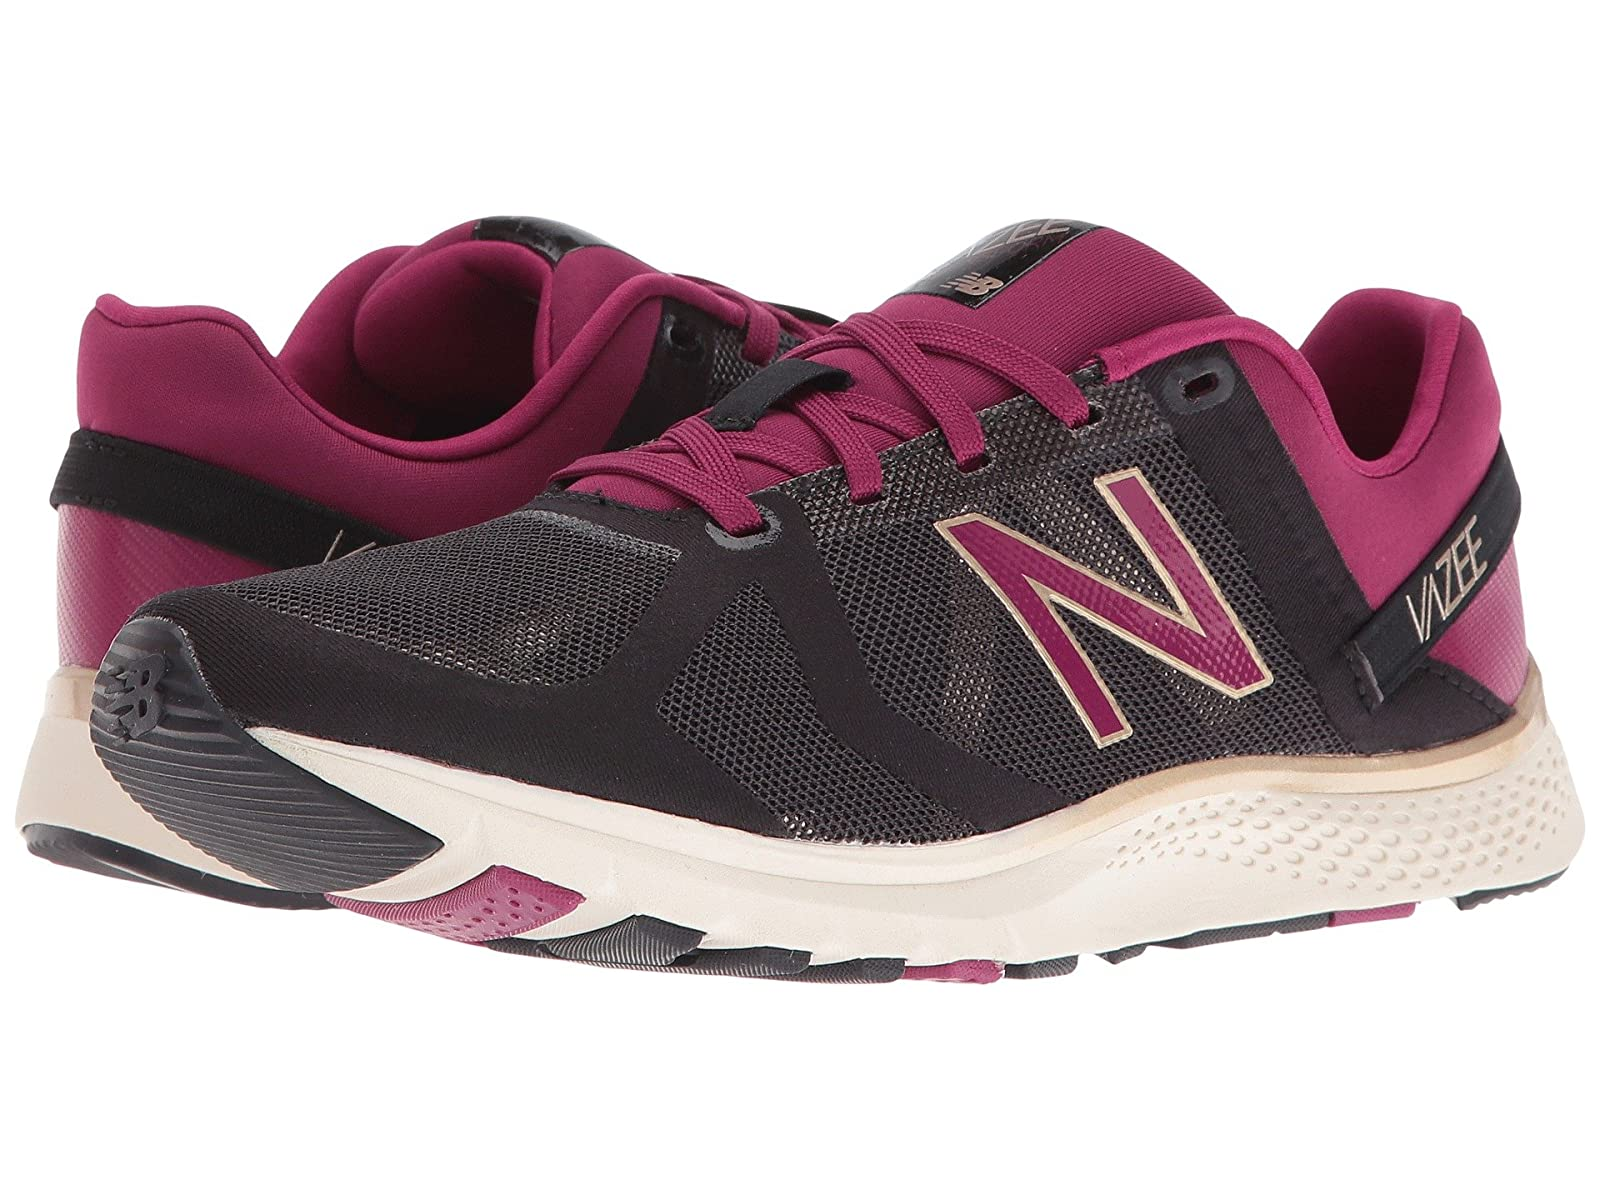 New Balance WX77v1Cheap and distinctive eye-catching shoes